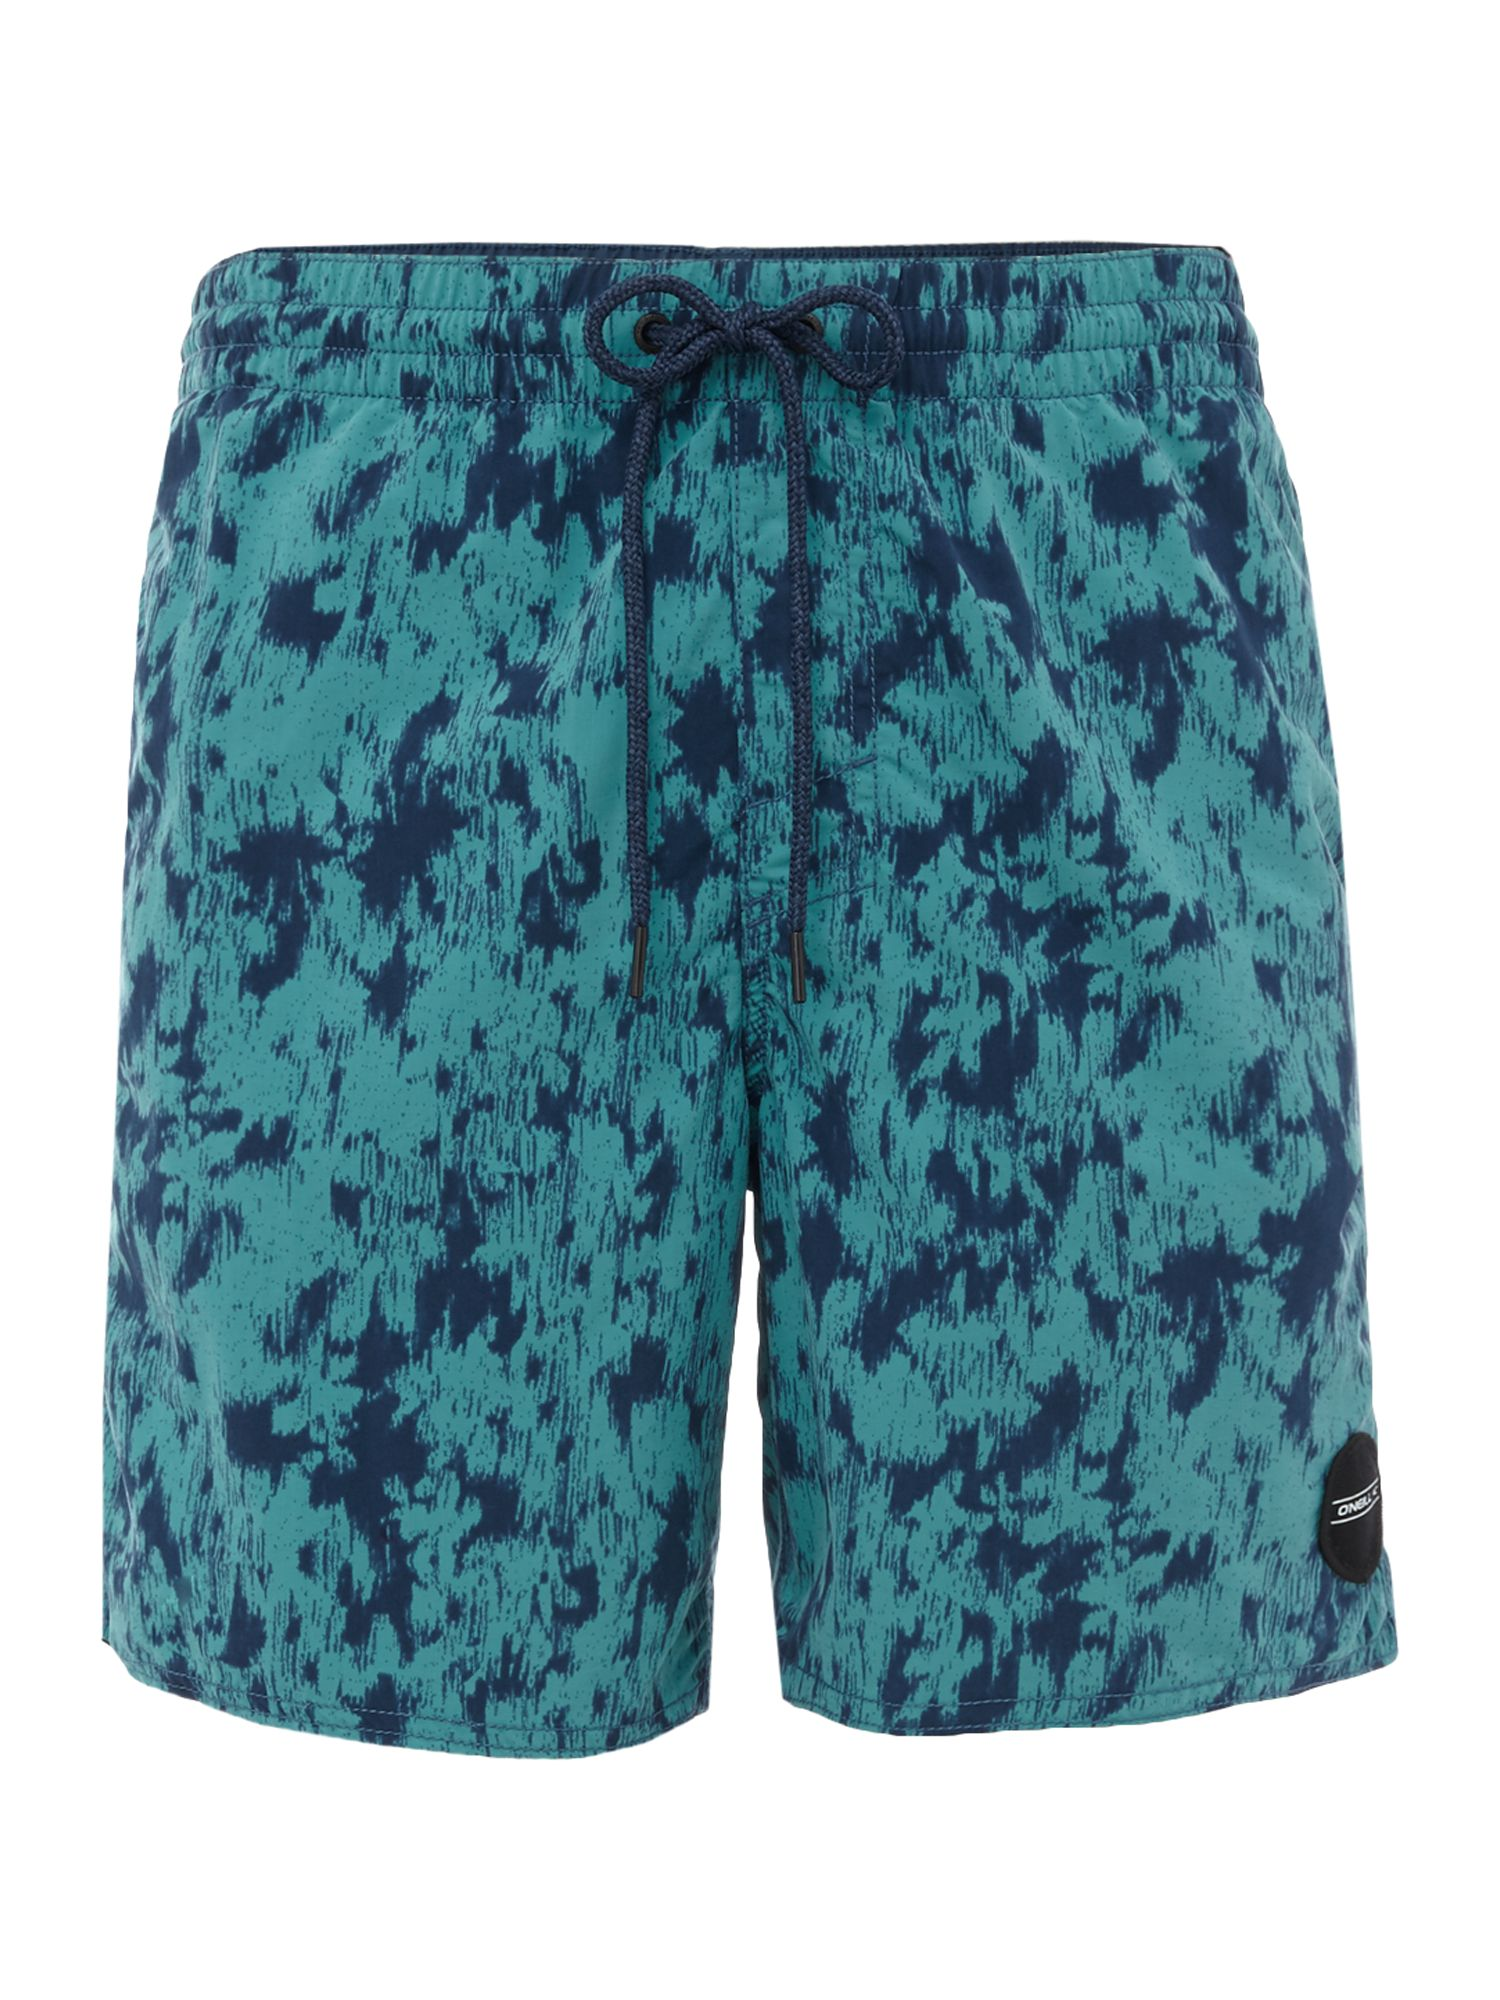 Men's O'Neill Thirst for surf shorts, Green Blue